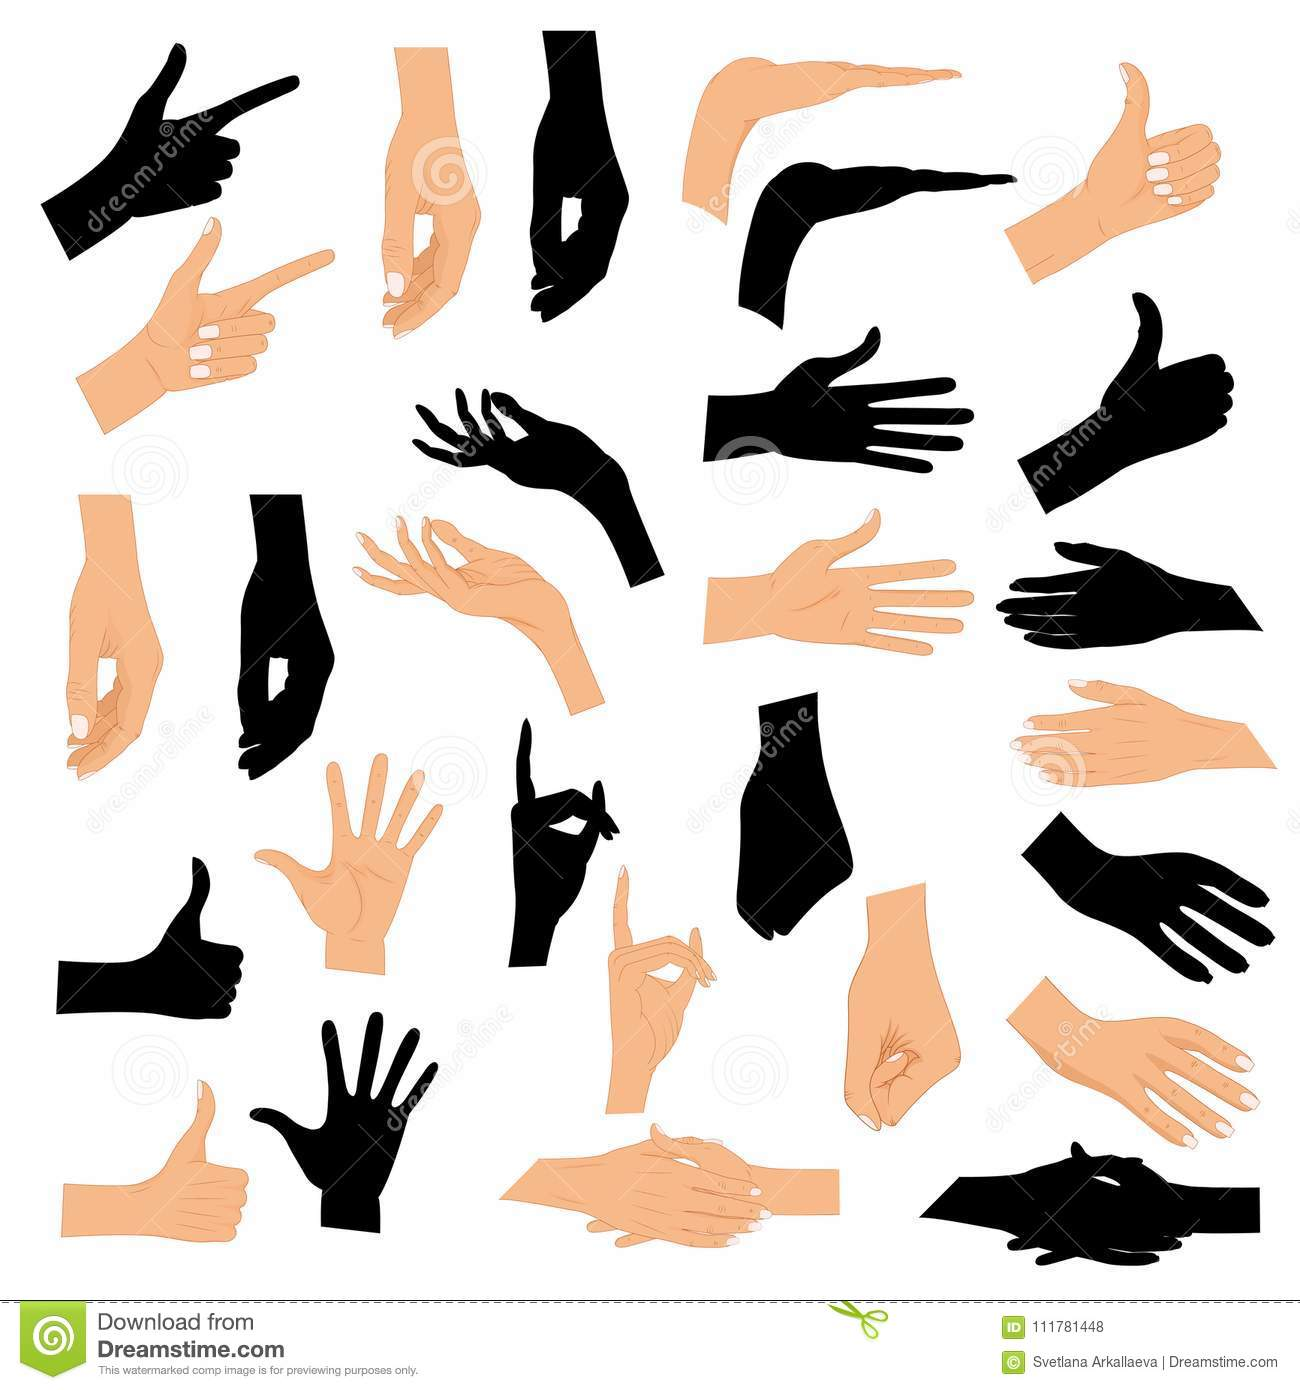 Set hands in different gestures with a black silhouette isolated on white background. Colored hand gesture set with